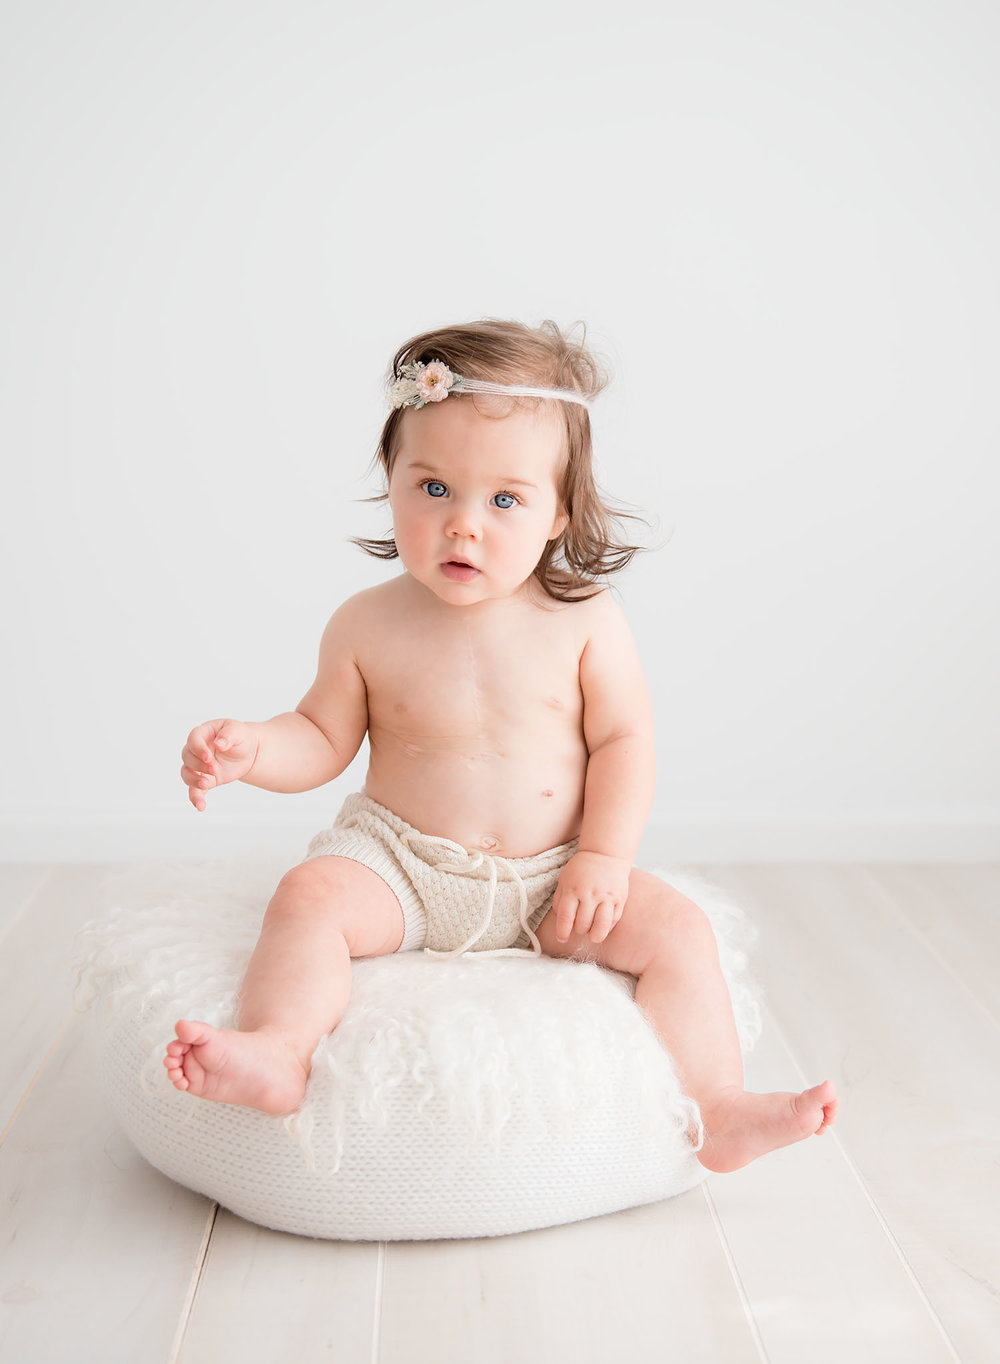 child-children-baby-photographer-photos-savannah-richmond-hill-baby-photos-ga5.jpg